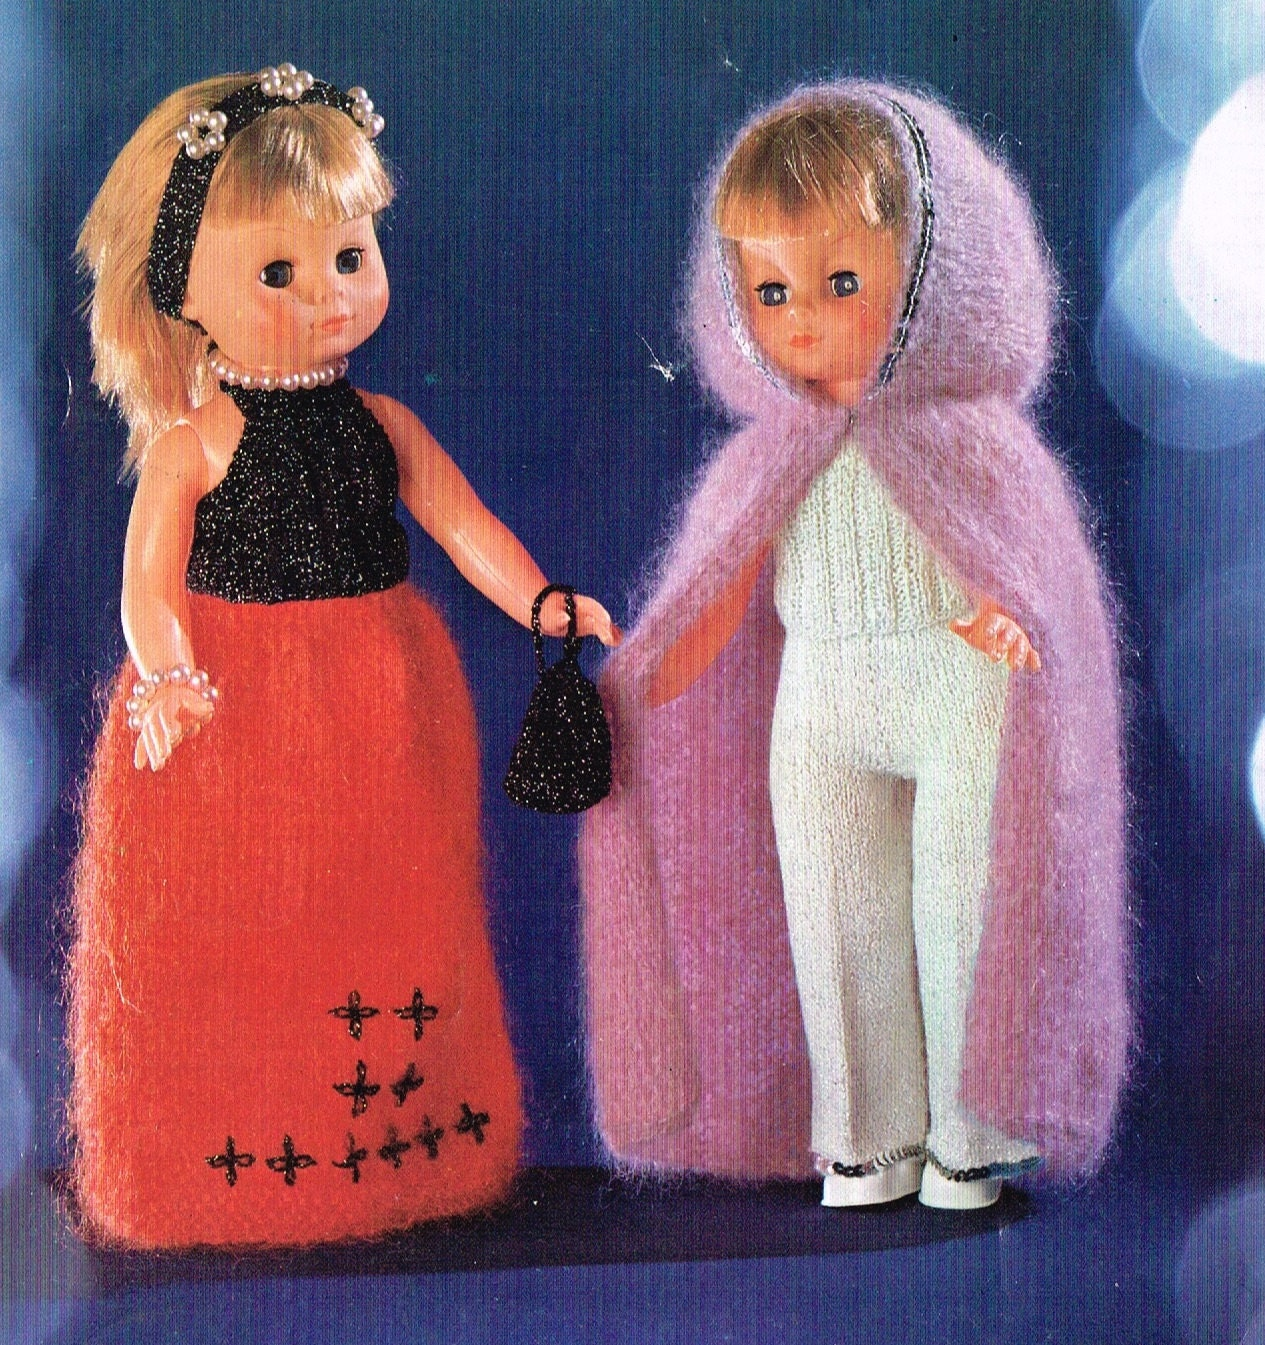 Knit Pattern Books For 18 Inch Doll Clothes : Dolls Clothes Knitting pattern for 18 inch doll. American